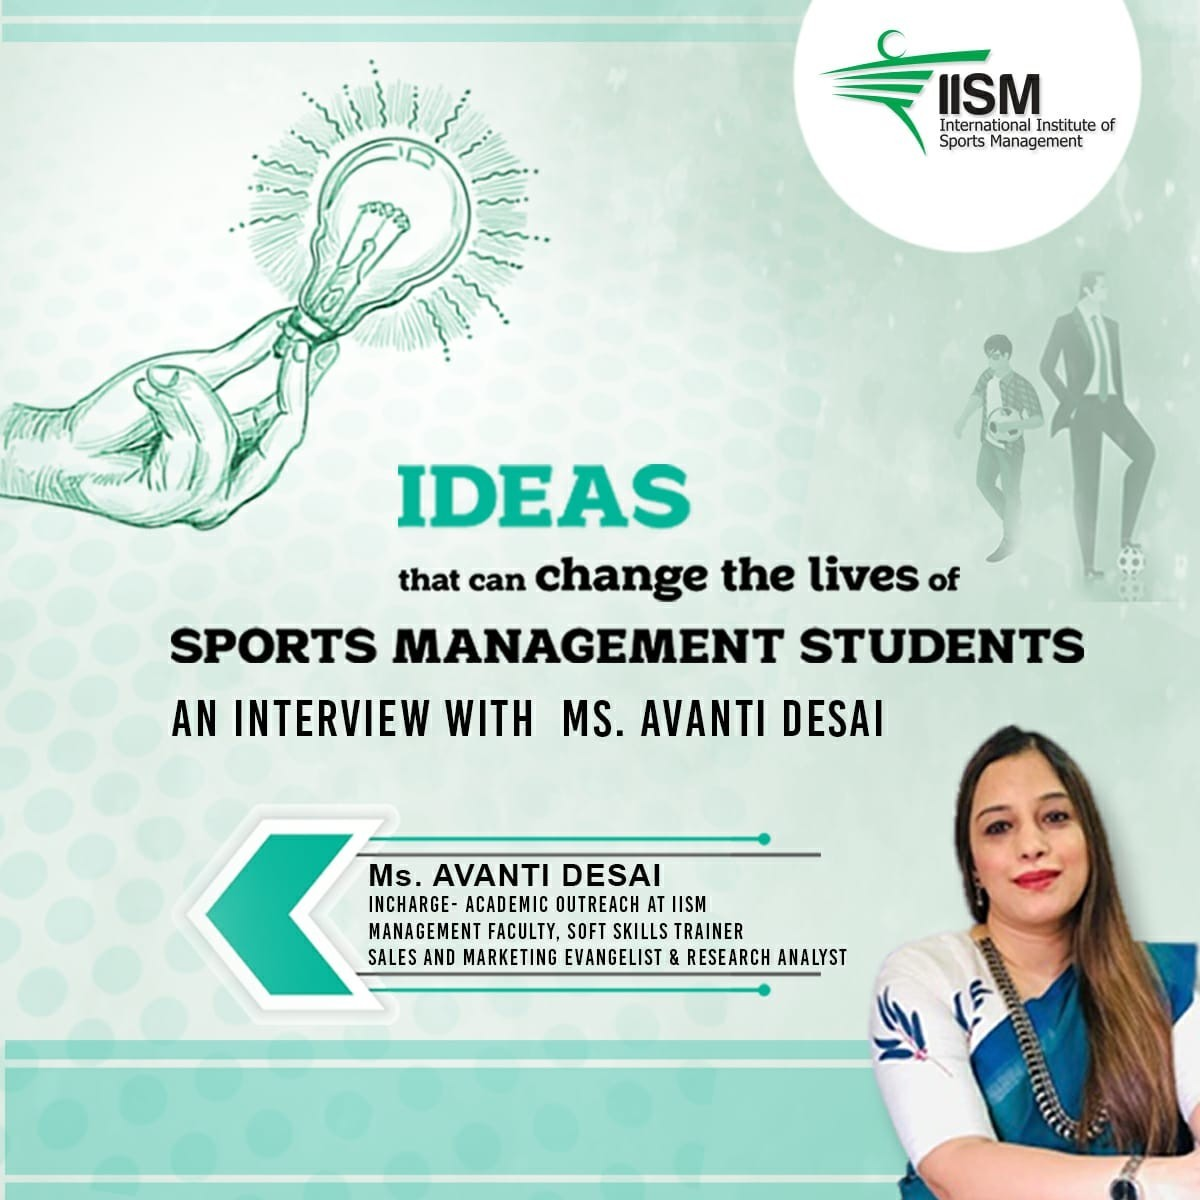 Ideas that can change the lives of Sports Management students- An interview with Ms. Avanti Desai